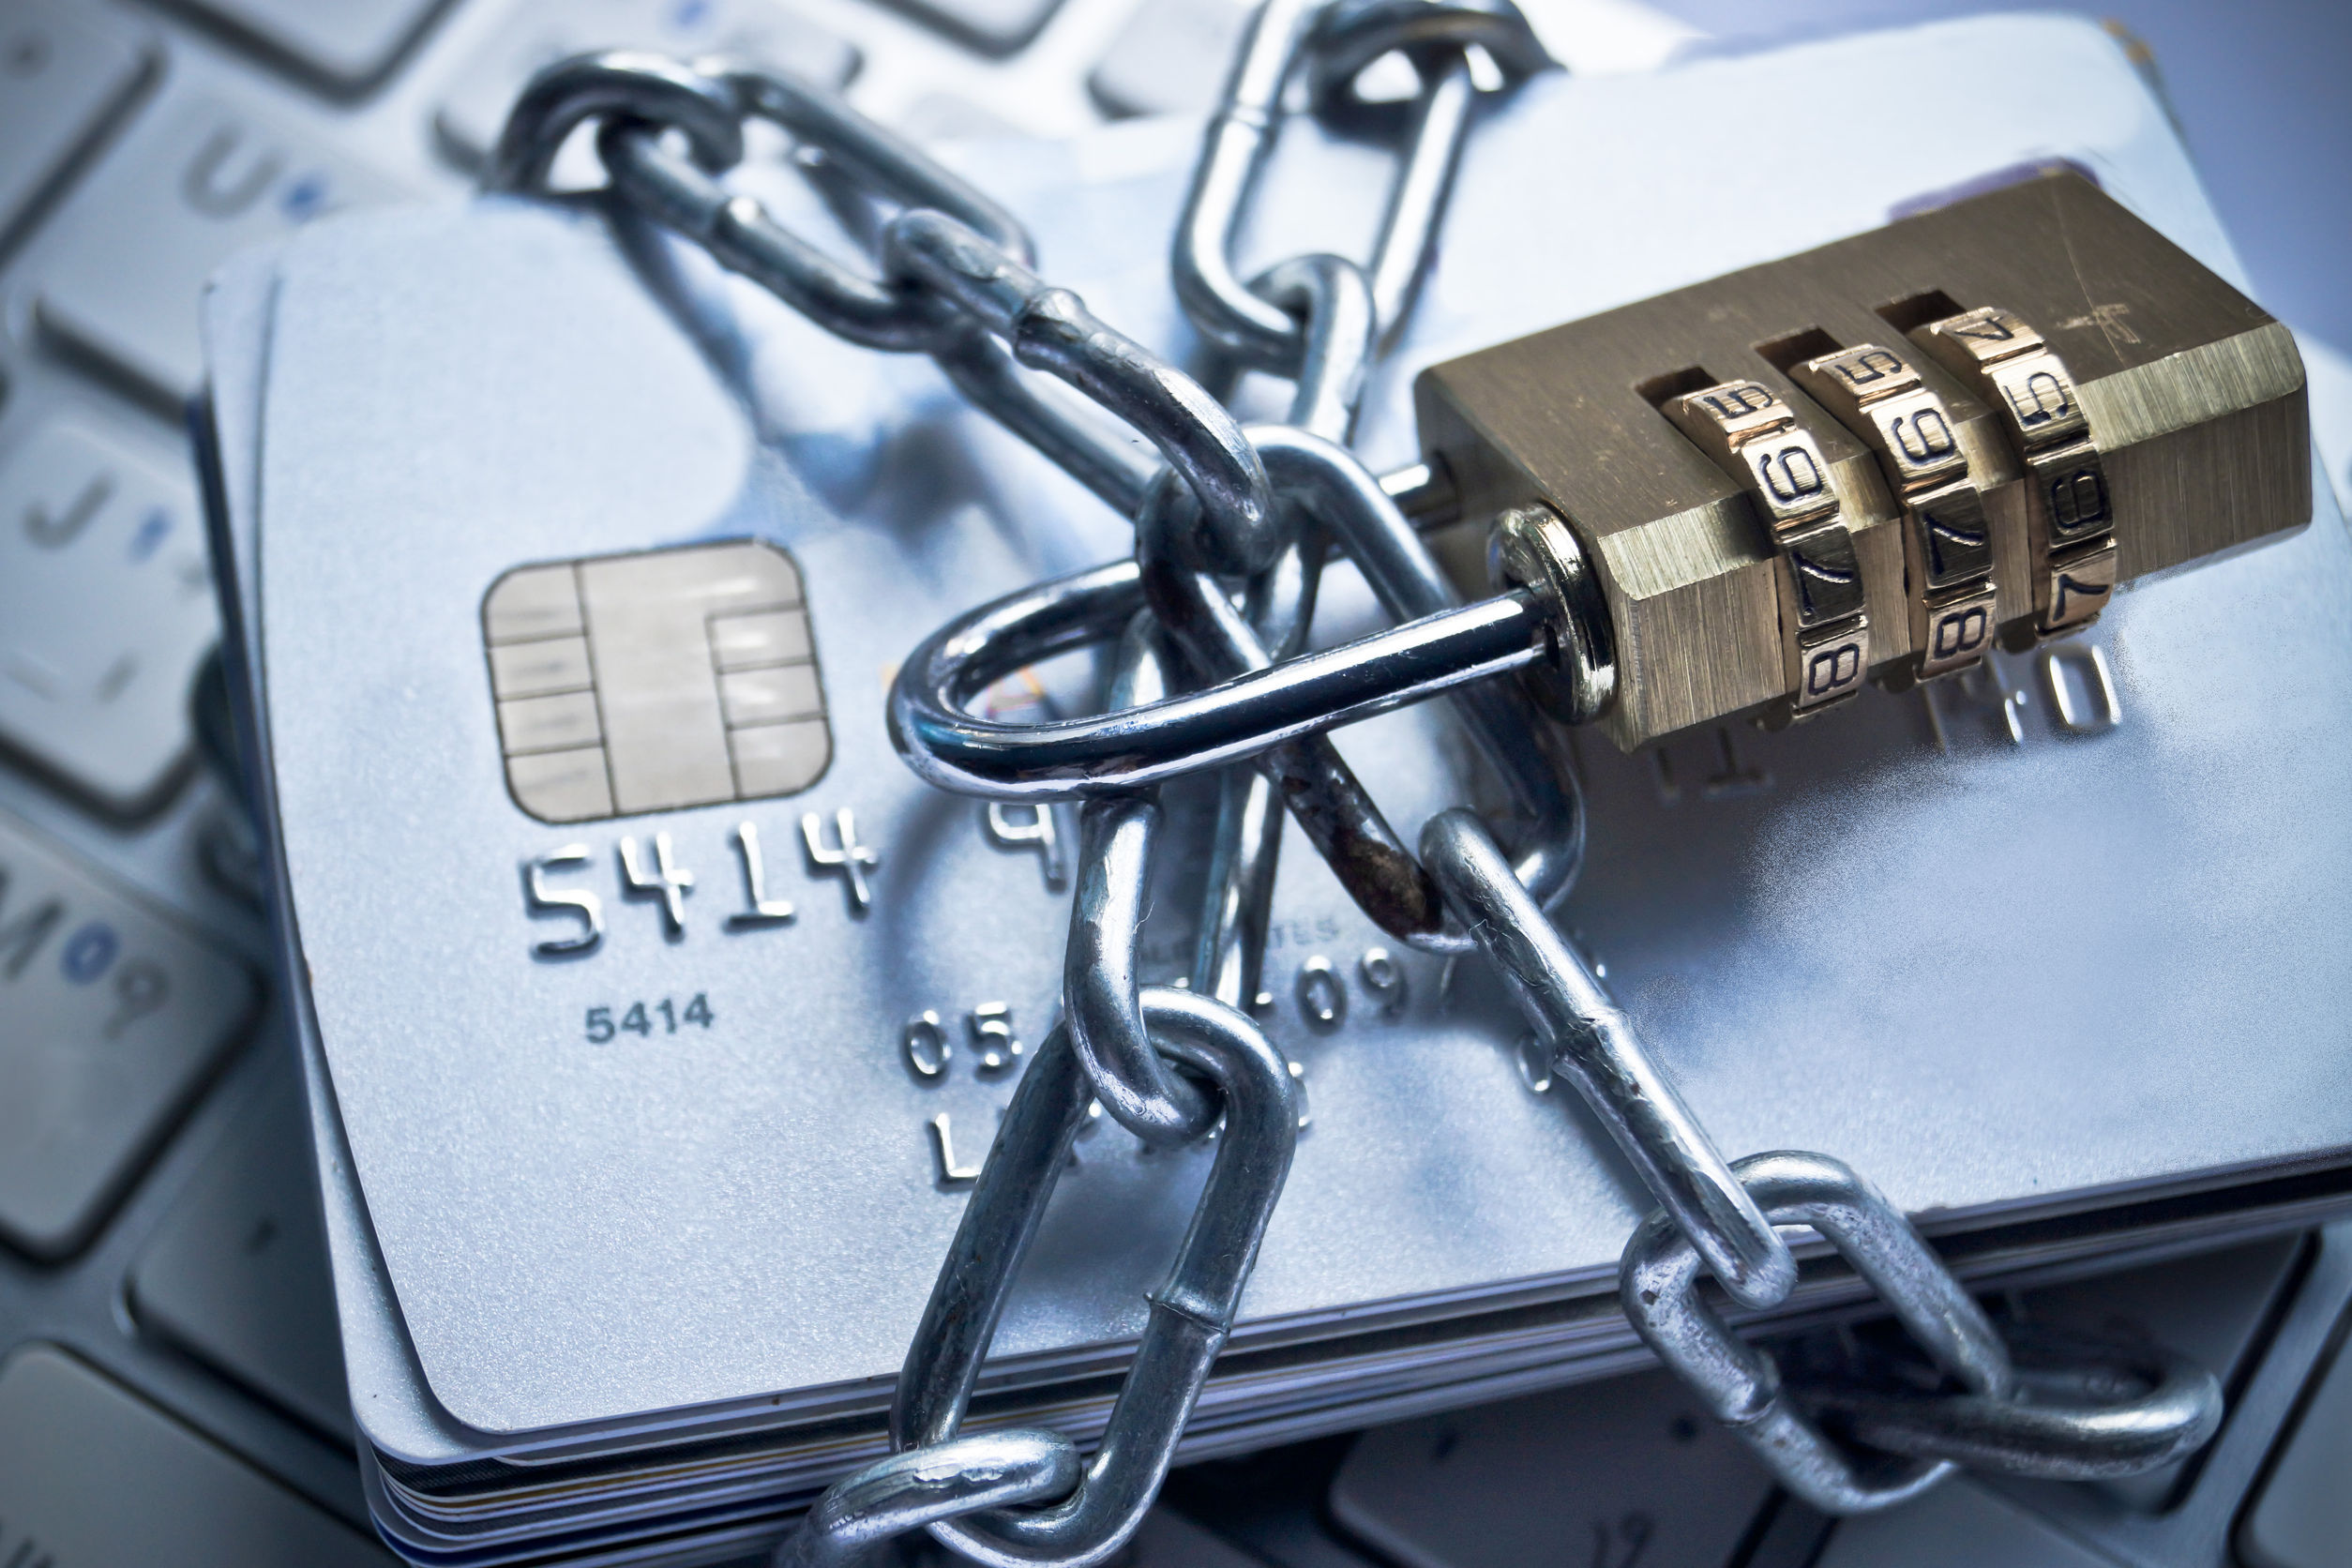 33146642 - chained credit cards security lock with password - phishing protection concept